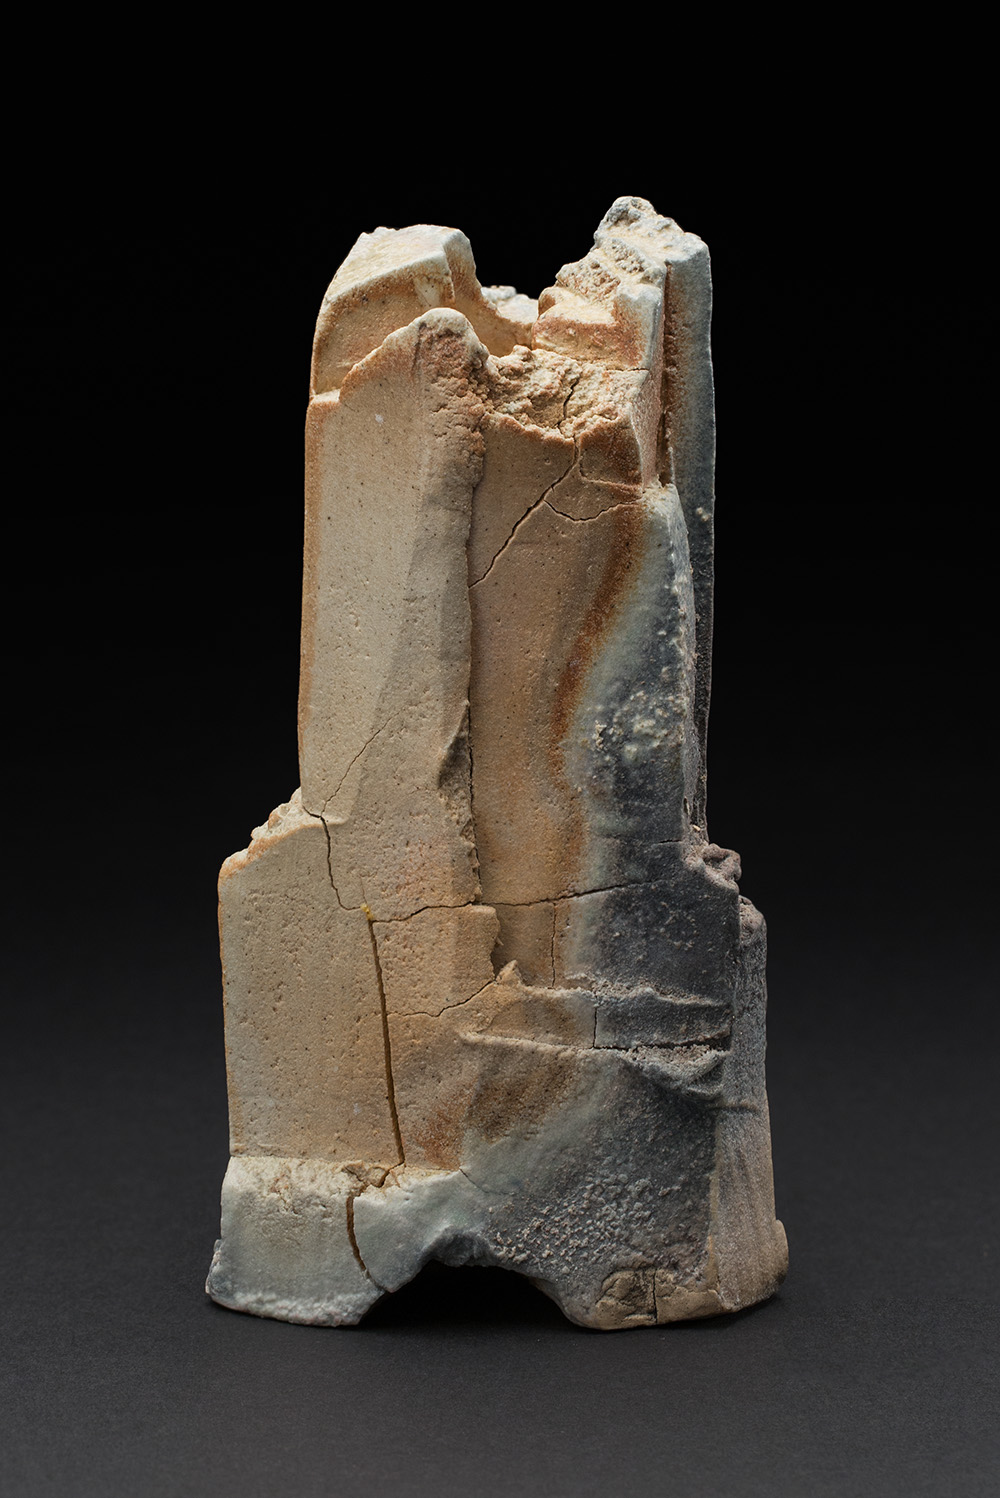 Lucien M. Koonce  Tri-Footed Hanaire  , 2017 Hand formed stoneware clay and natural ash glaze; wood fired (anagama side stoke area) for five days to c/12 8.25 x 4 x 4.5 inches 21 x 10.2 x 11.4 cm LKo 8